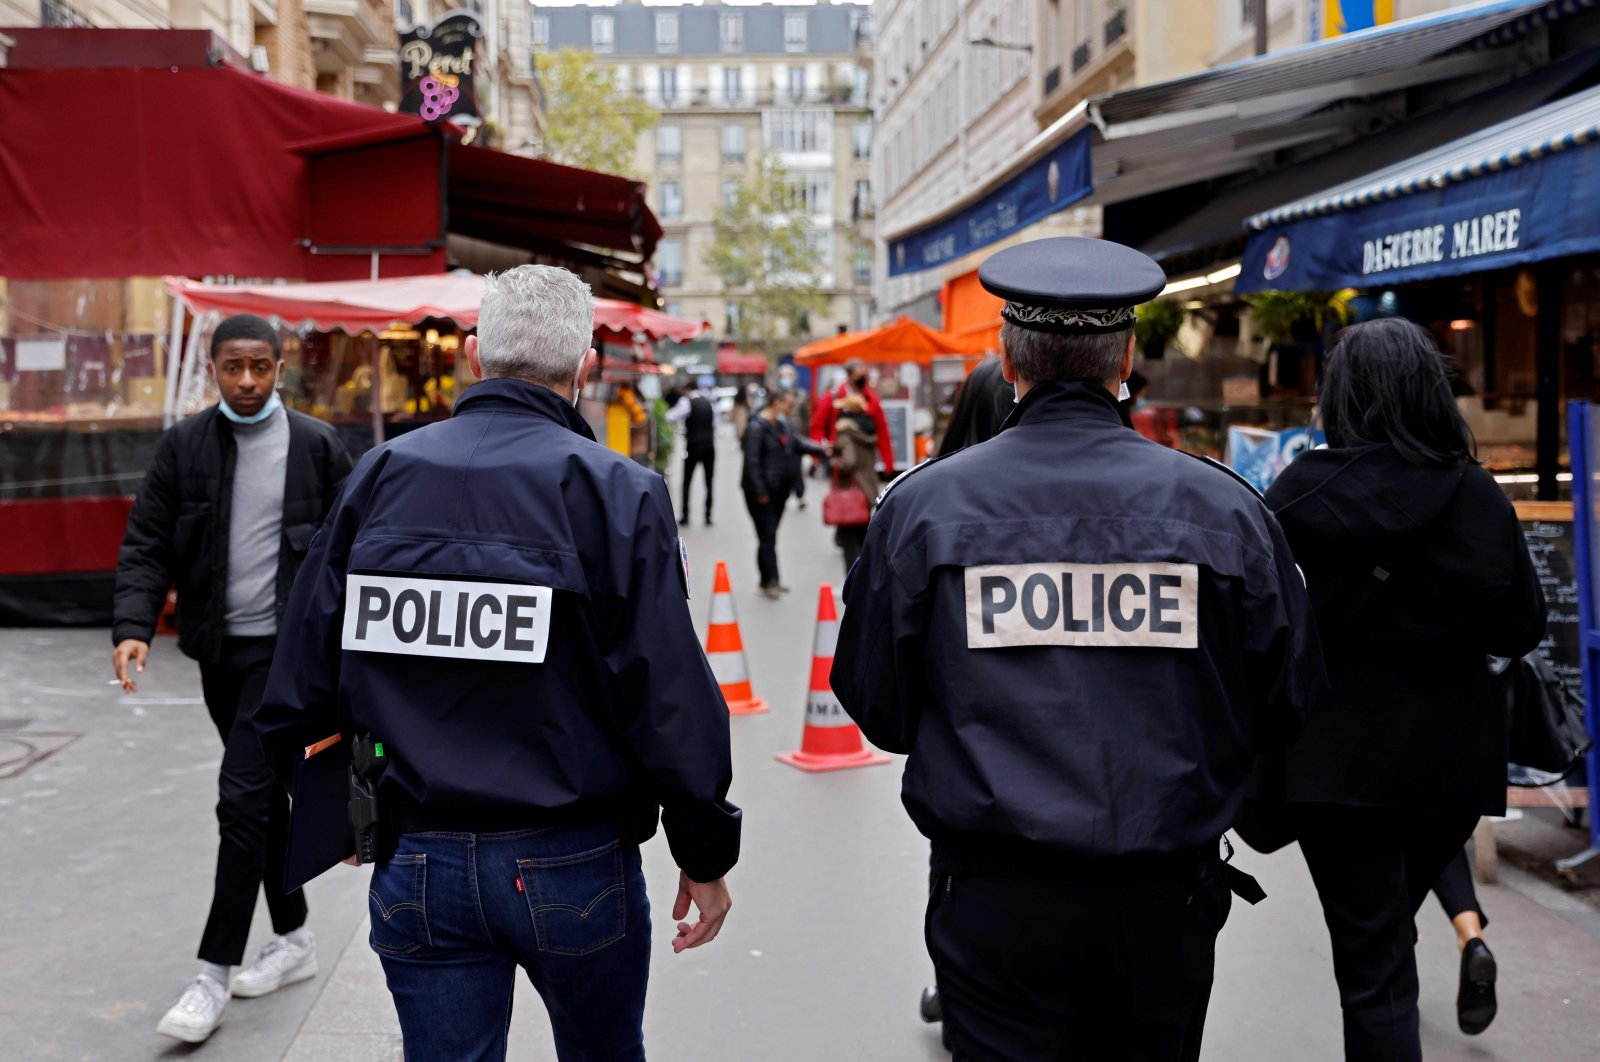 Police officers walk in a street with restaurants, Paris, Oct. 6, 2020. (AFP Photo)